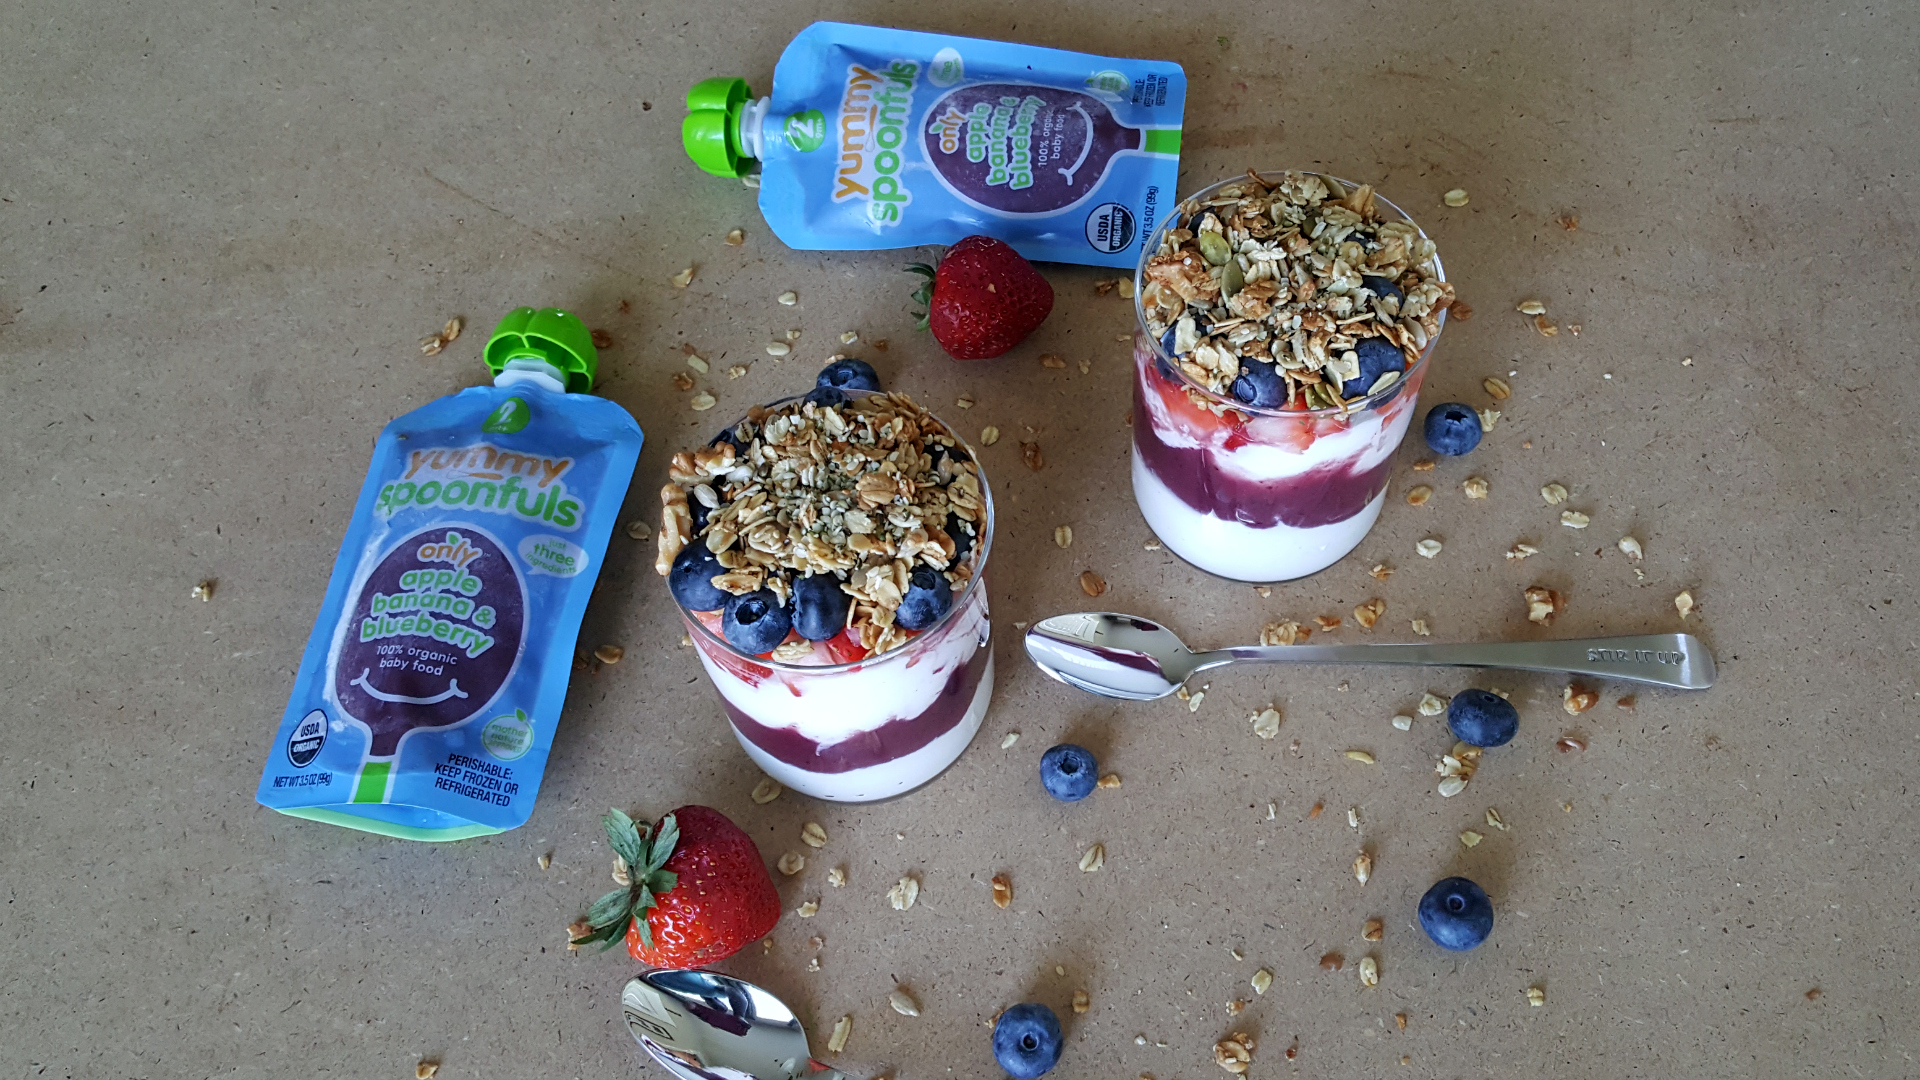 In the Kitchen with Agatha: Apple Banana Blueberry Yogurt Parfait